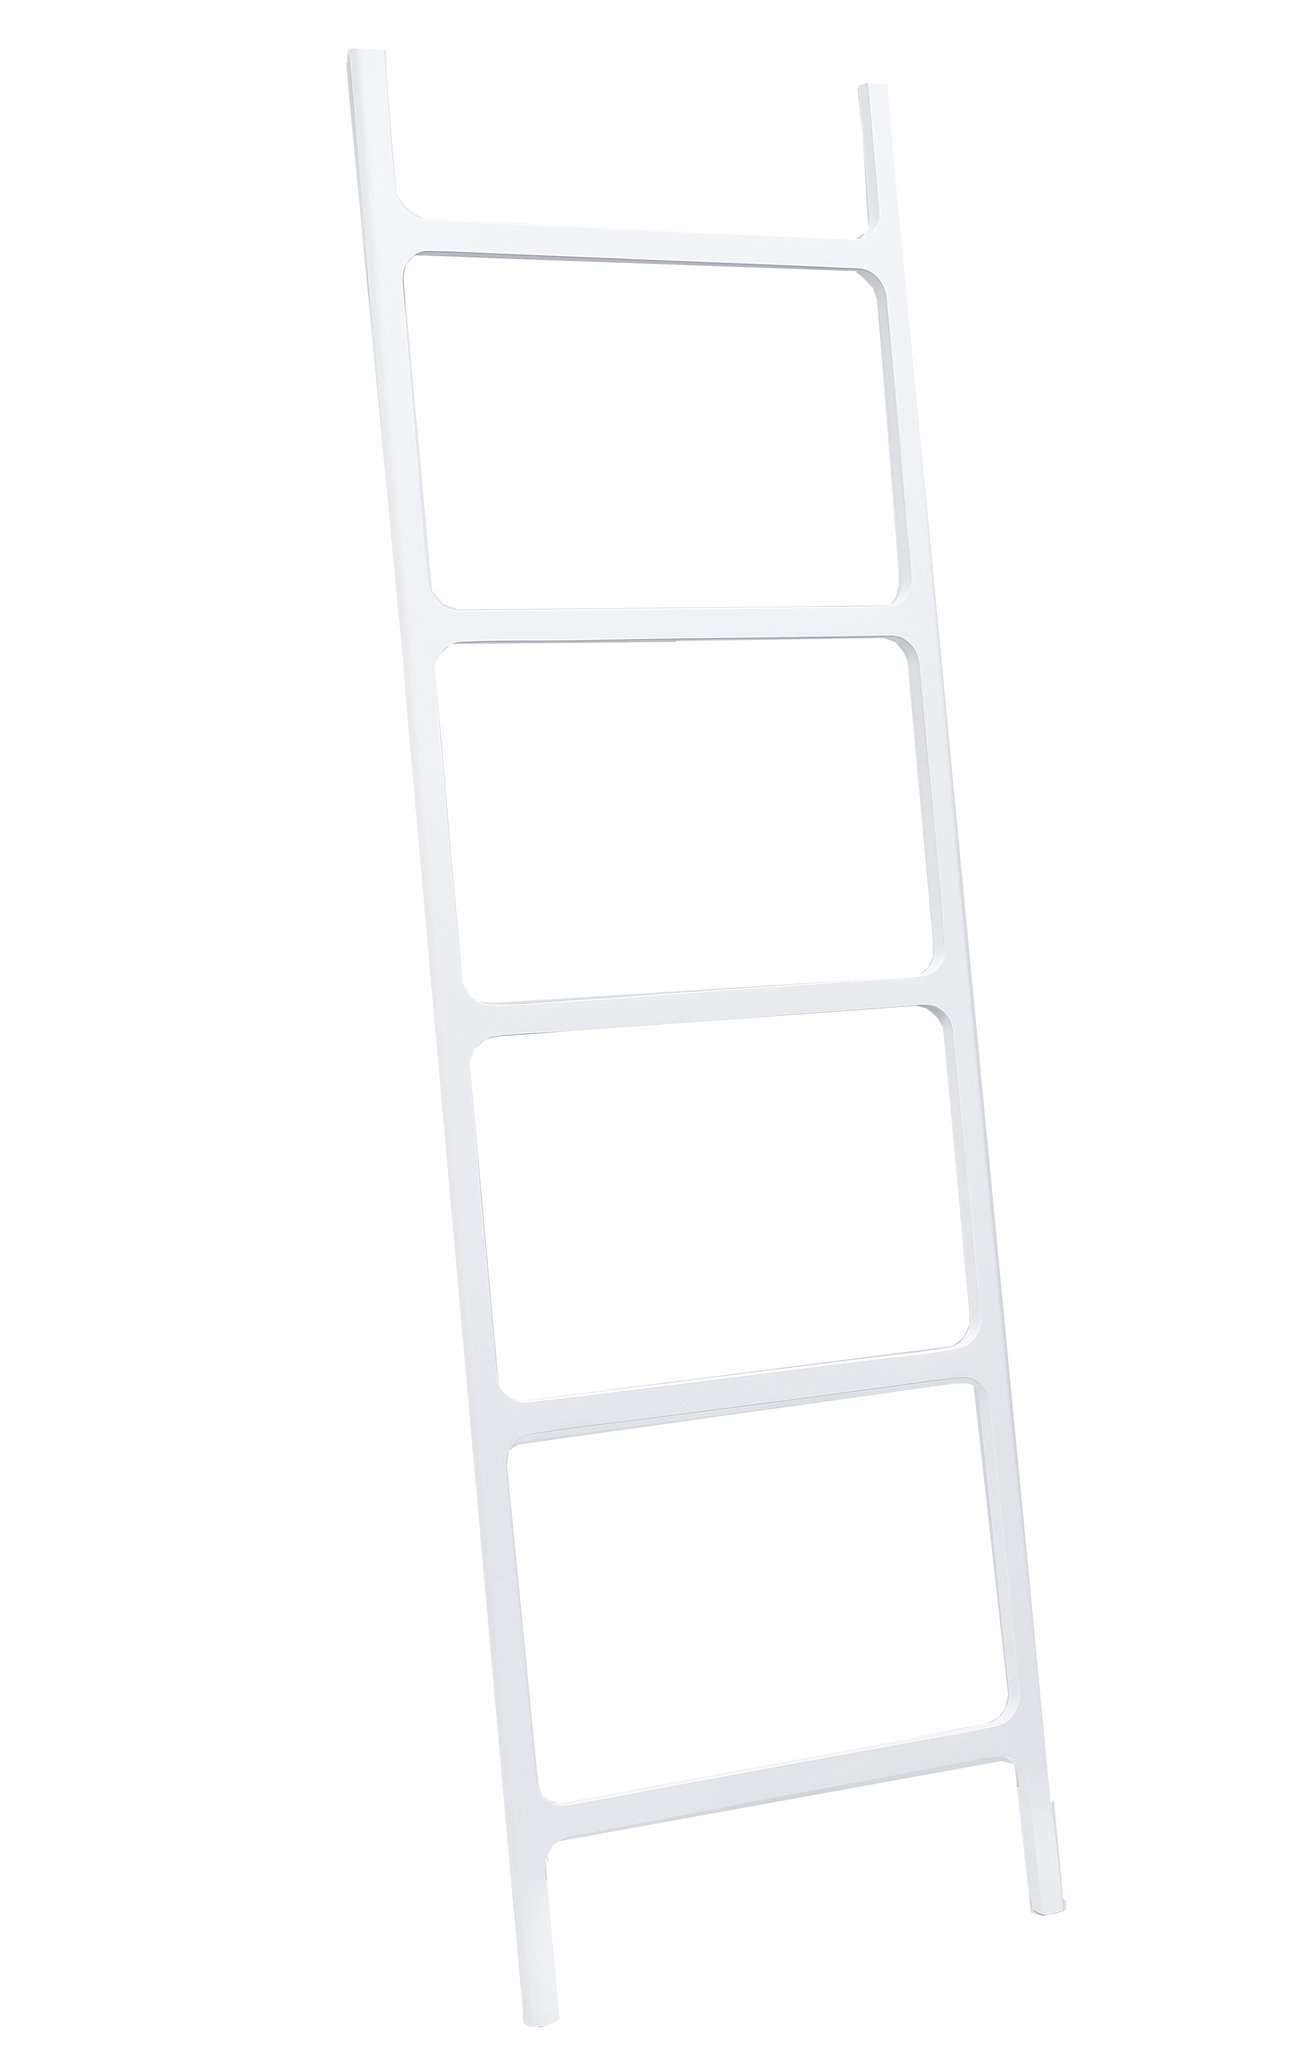 DWBA Stone Standing Towel Rack Ladder for Bathroom Spa Towel Hanger, White